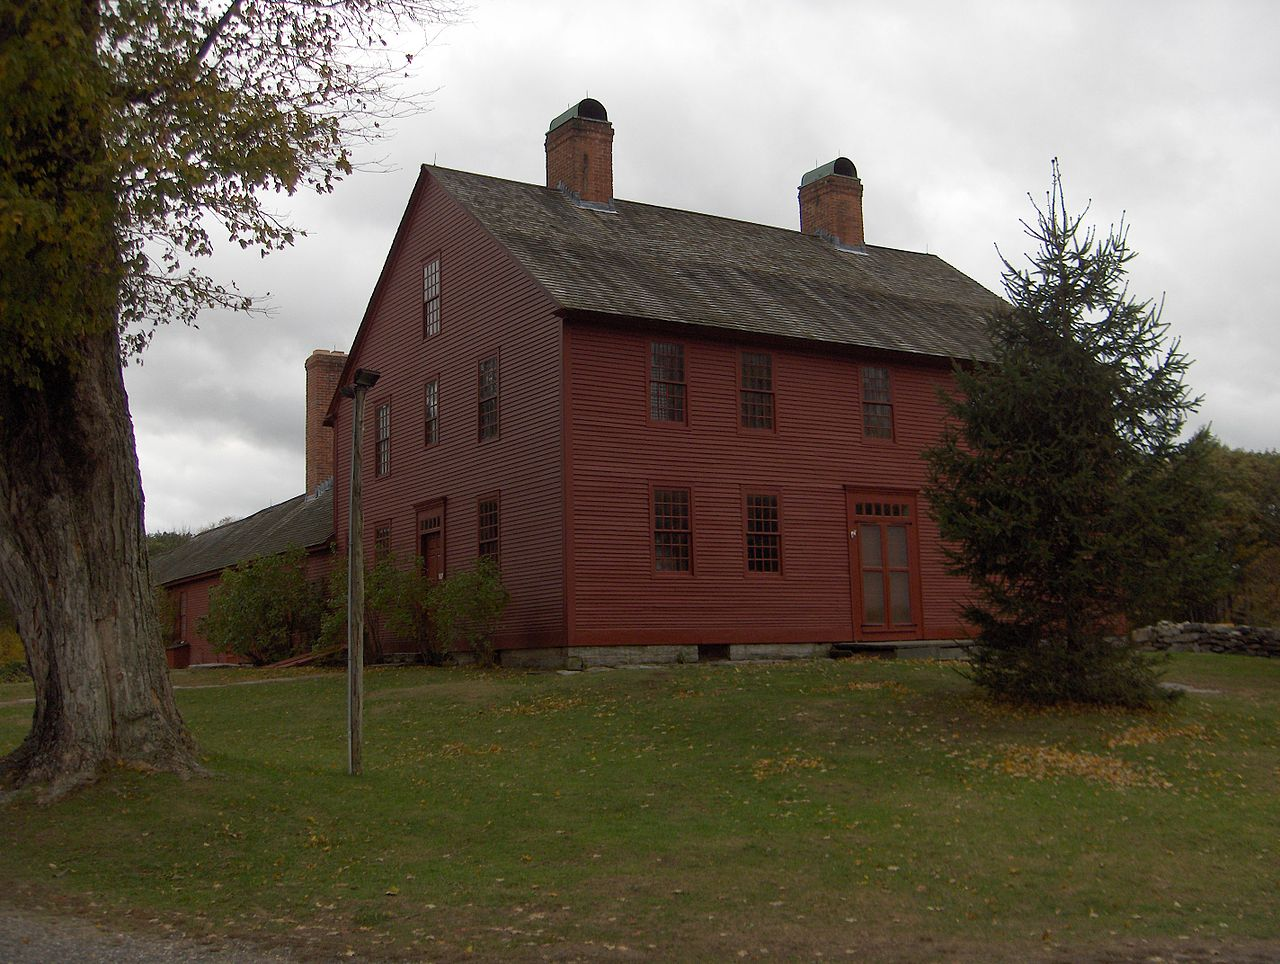 The Hale Homestead, home to the whole Hale family except for Nathan.